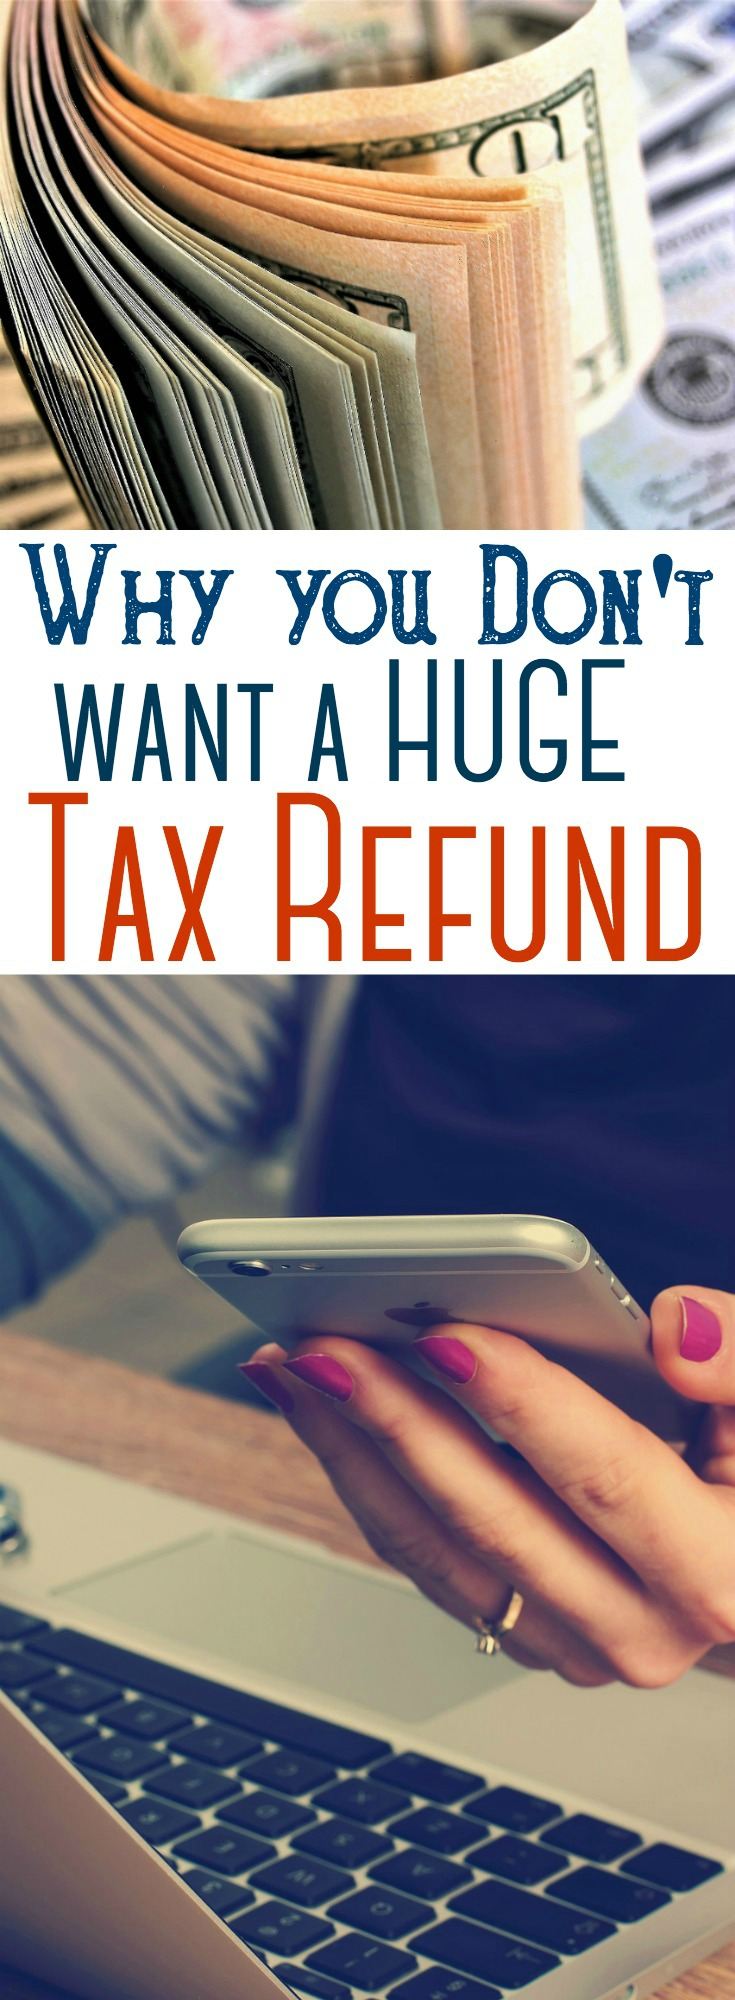 A tax refund, though it might seem like a windfall, isn't necessarily a good thing. Avoid that huge tax refund each year and make your money work harder for you. #taxes #refund #saving #finance #budget #investing #retirement